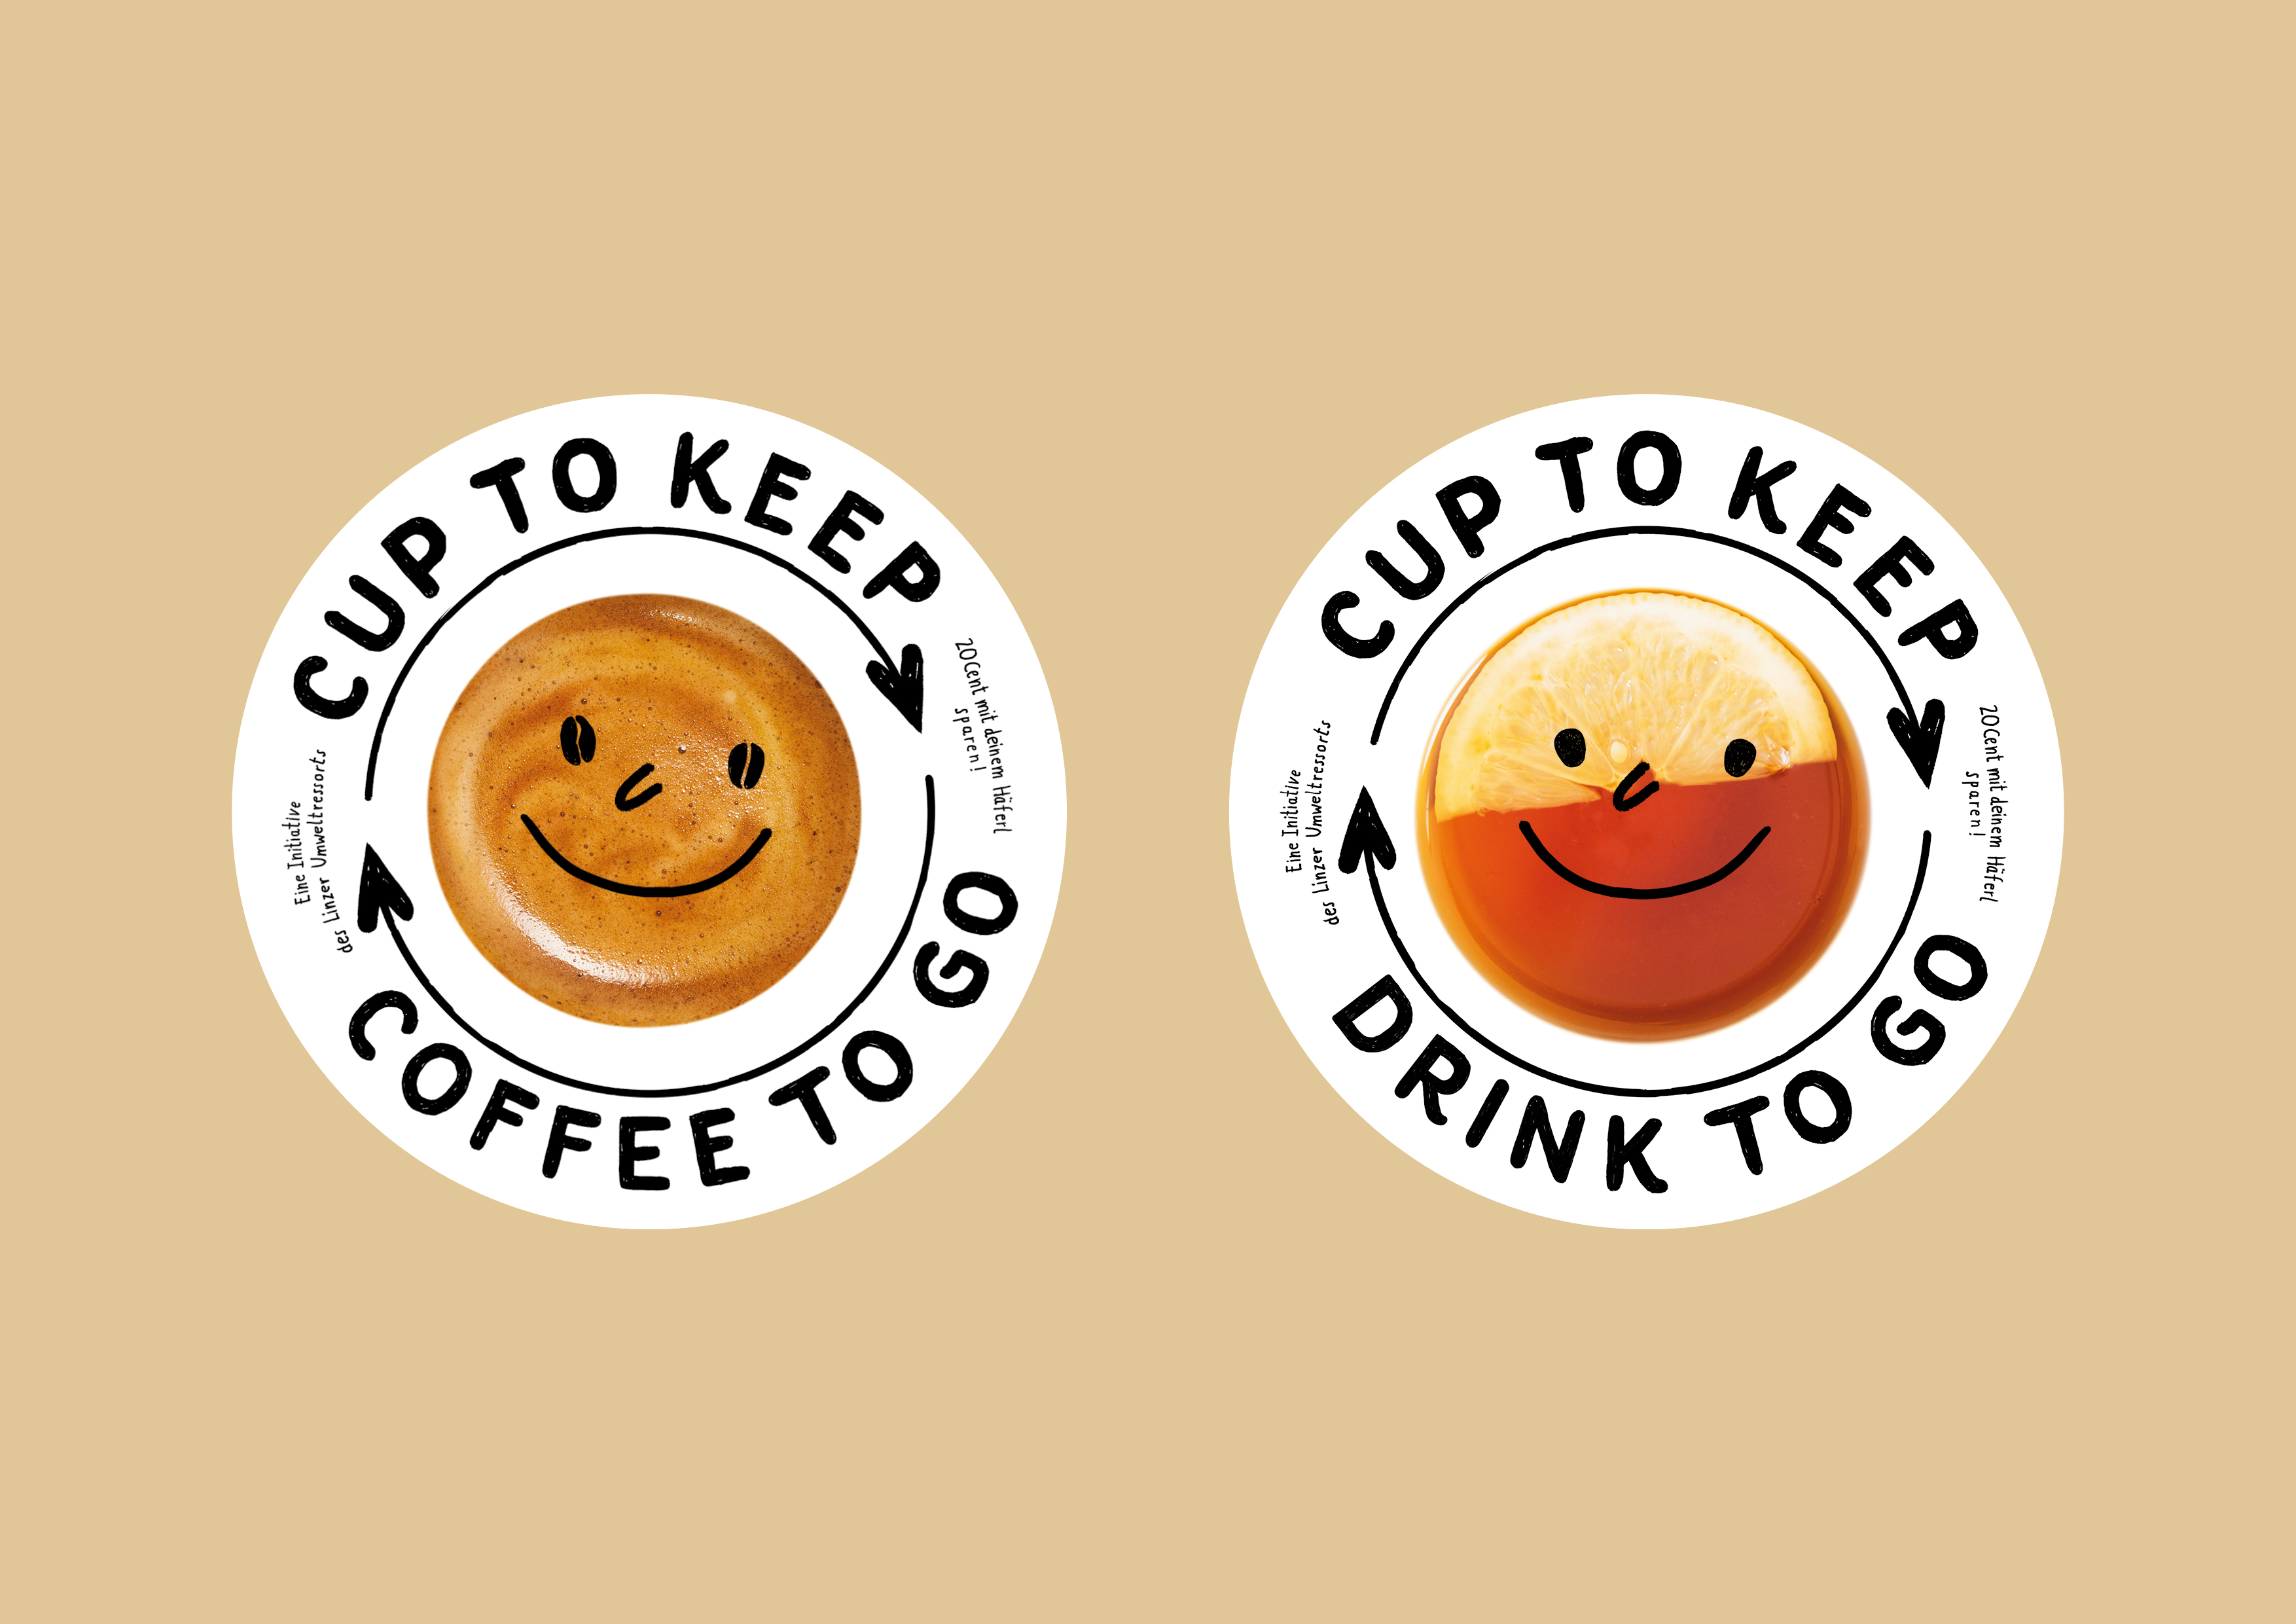 Cup to keep - Coffee to go, Illustration Silke Müller, Linz